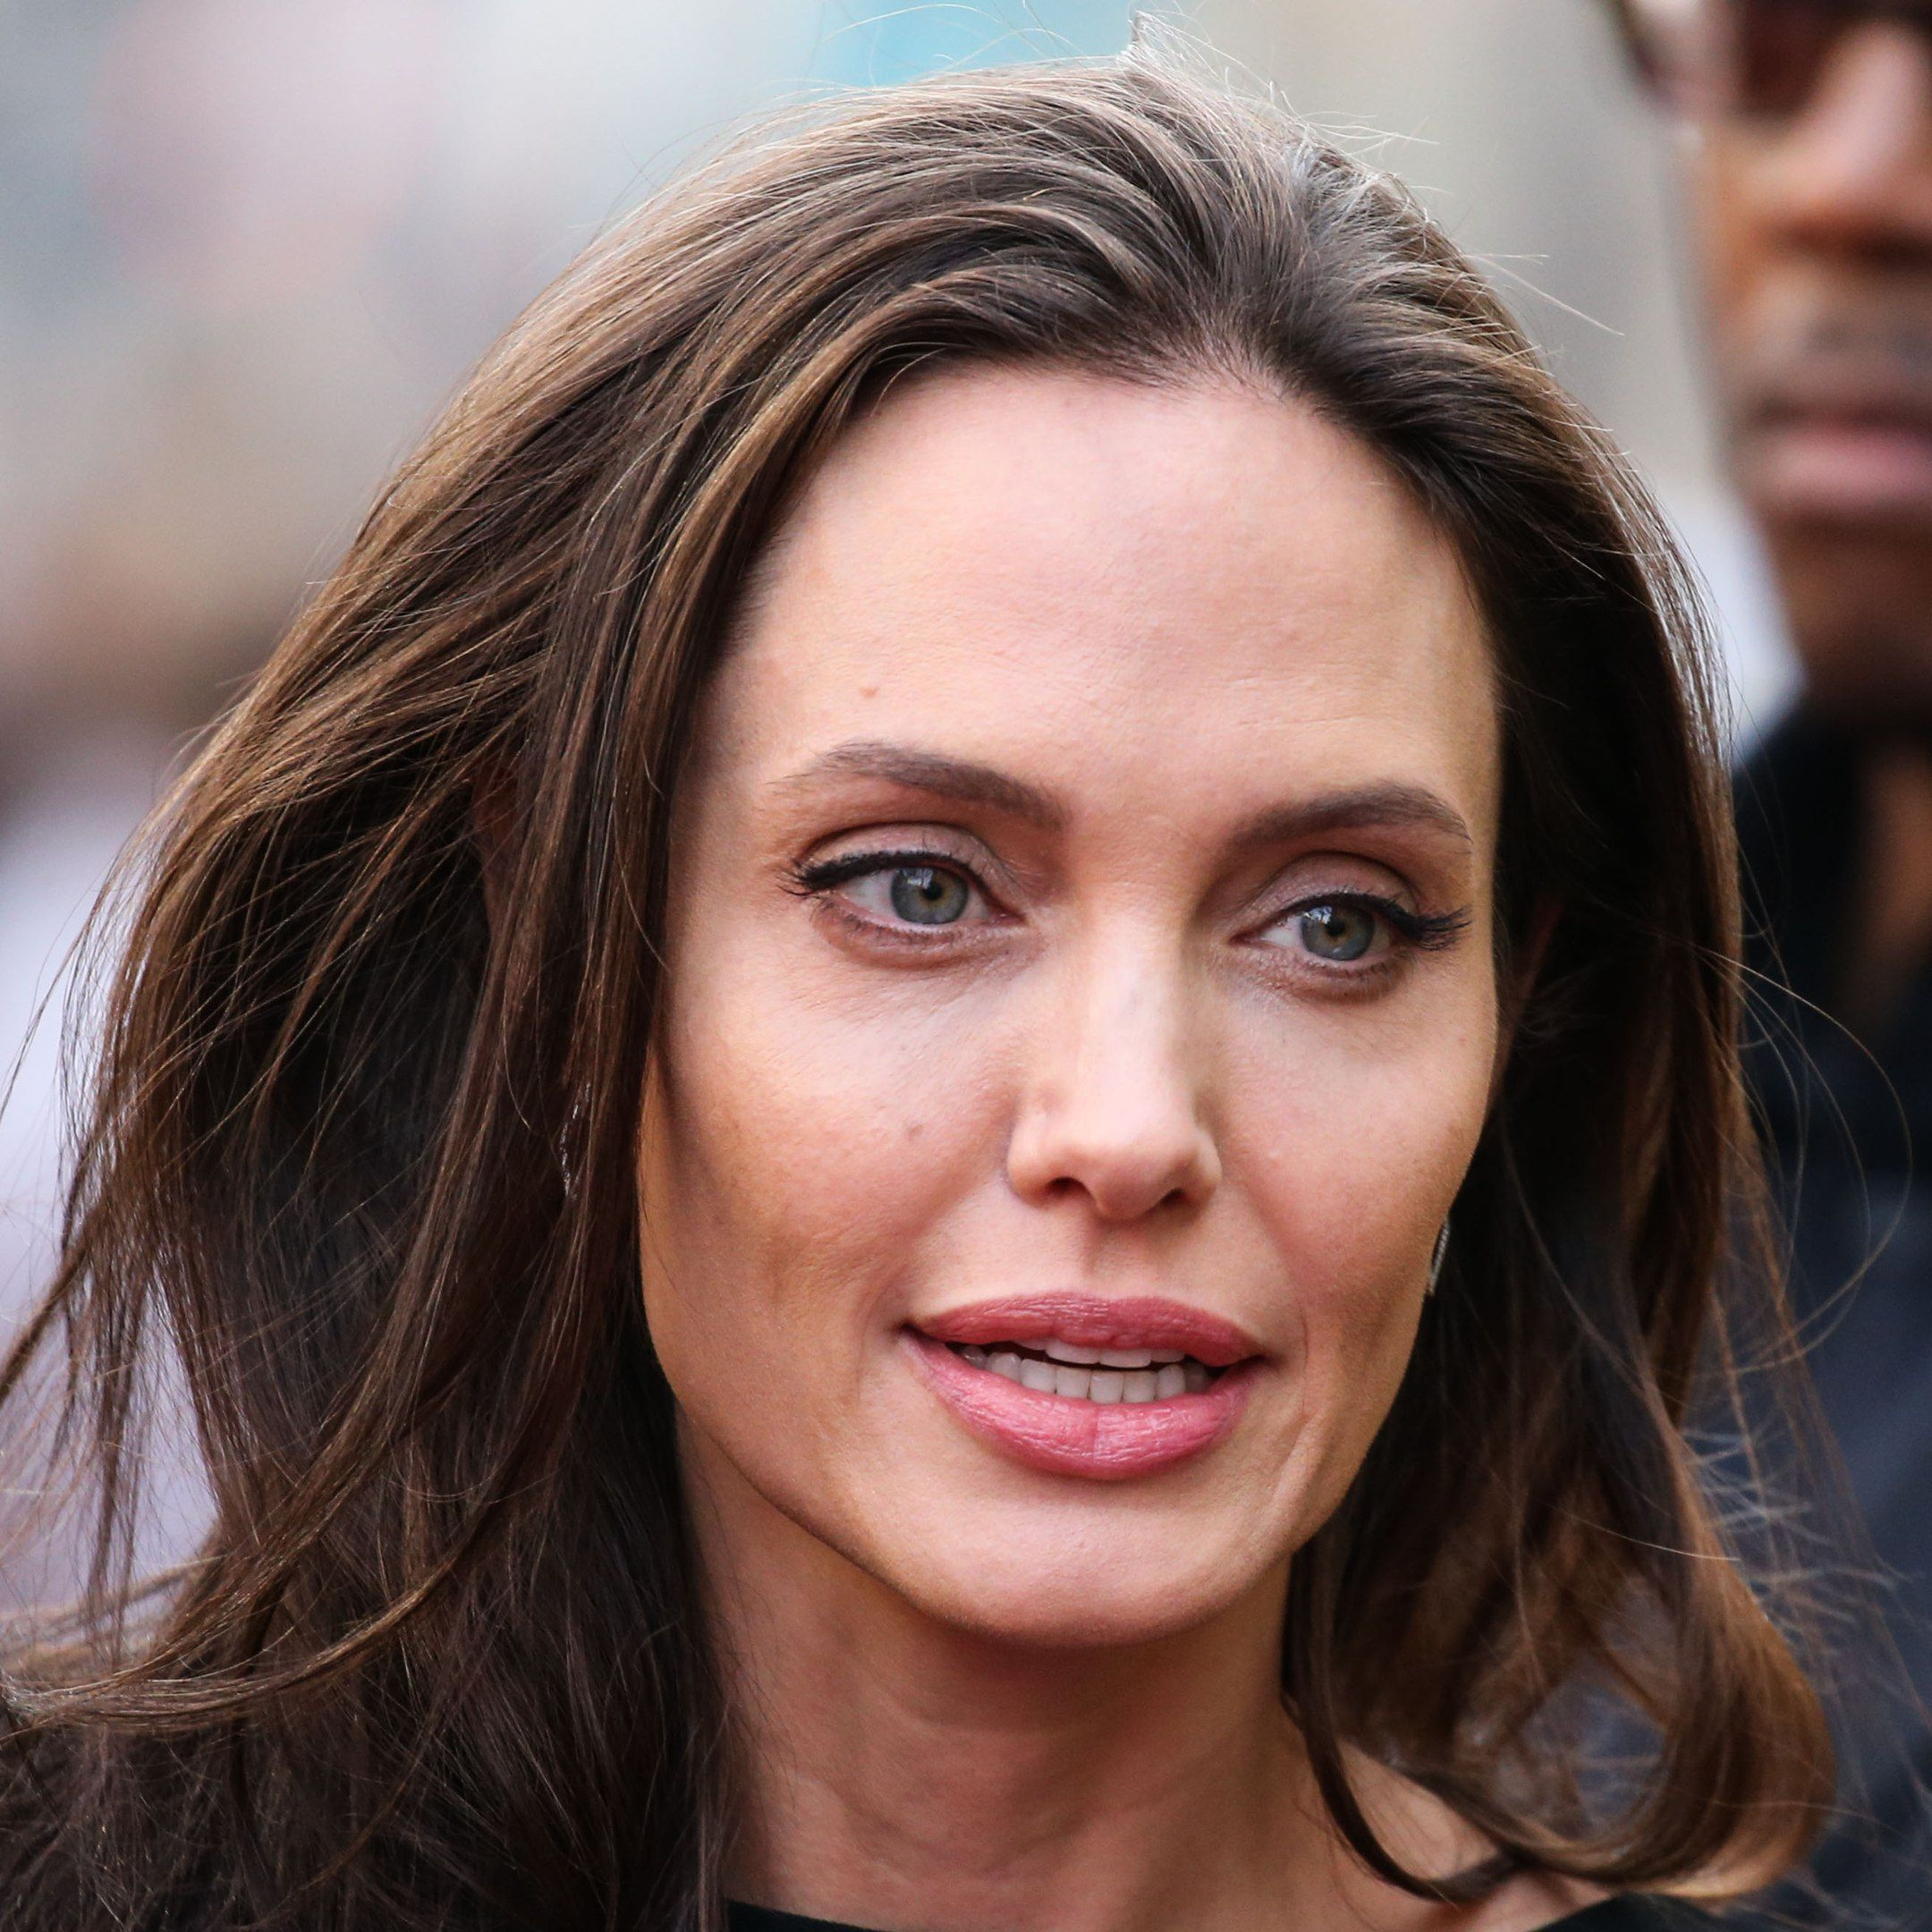 Pin by willy on Angelina Jolie | Pinterest | Angelina jolie